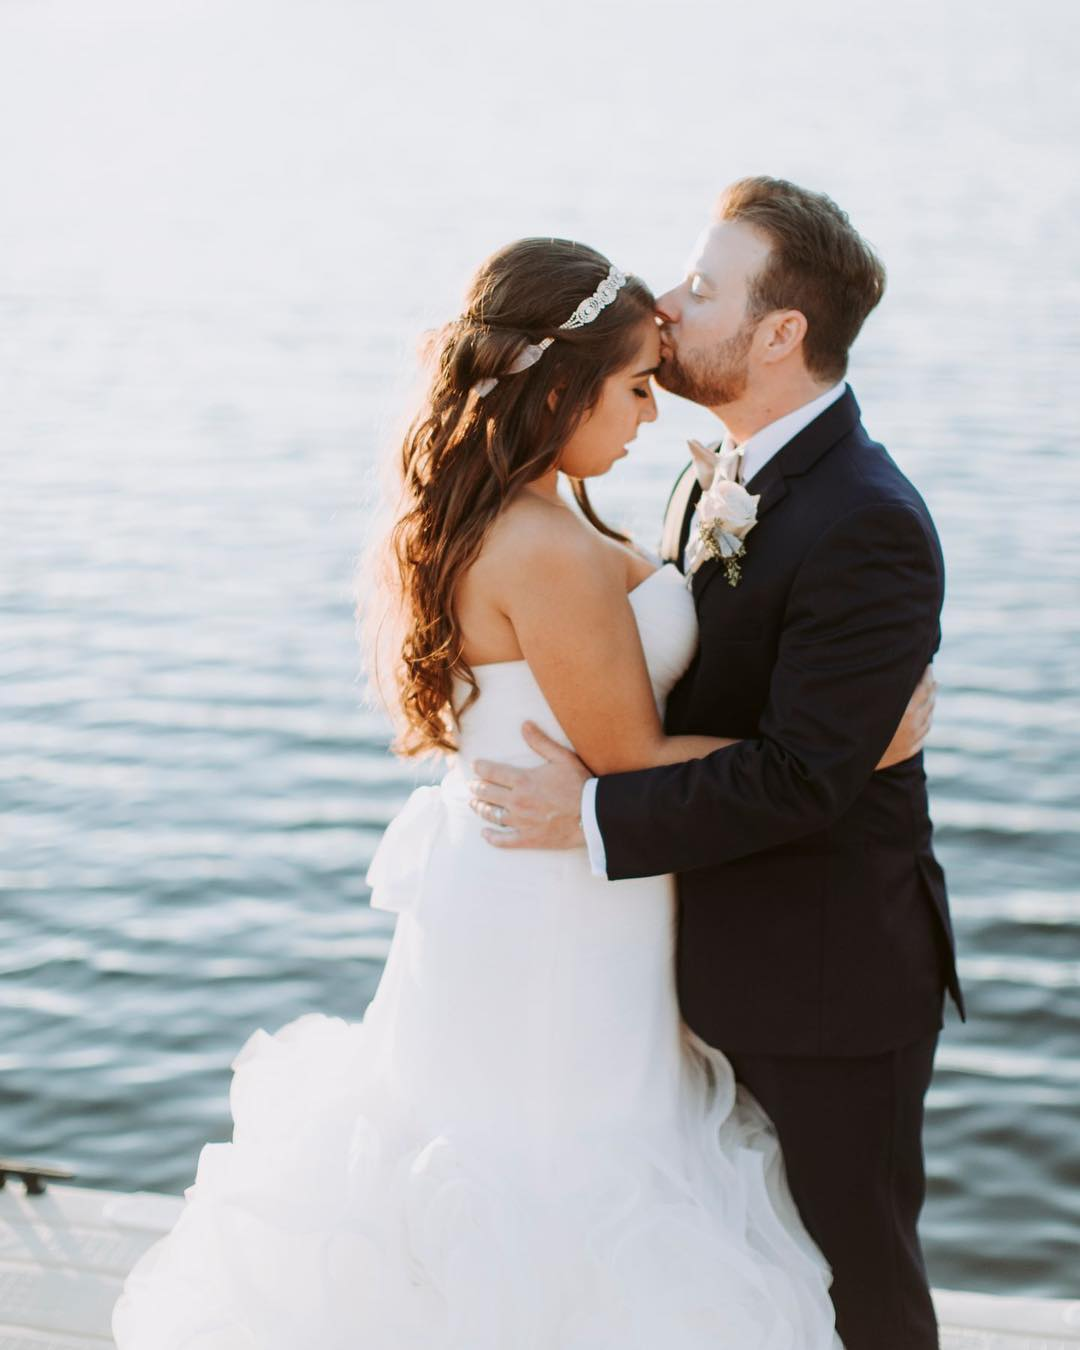 The Reeds at Shelter Haven Wedding Planned by The Styled Bride | www.thestyledbride.com